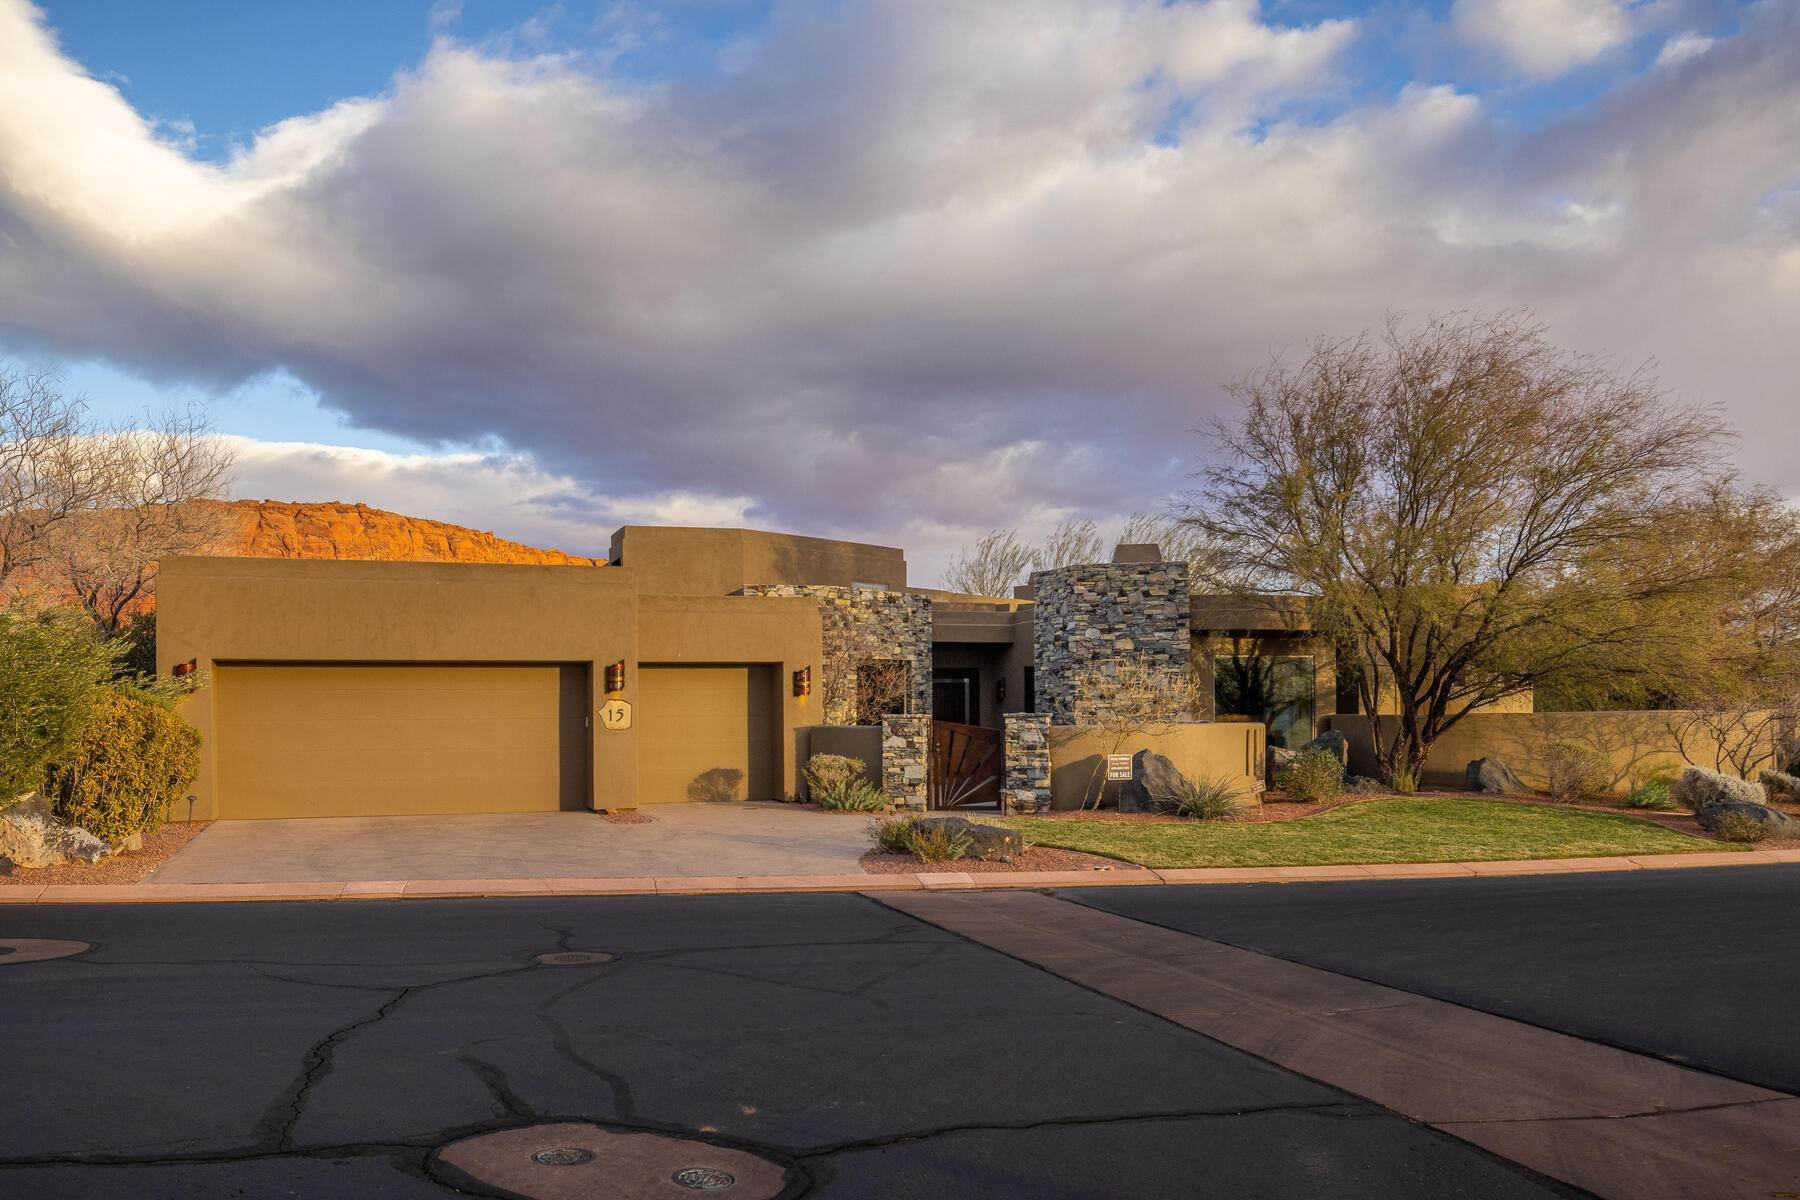 Single Family Homes for Sale at Reserve at Entrada Desert Contemporary Retreat 1500 E Split Rock Dr, #15 Ivins, Utah 84738 United States